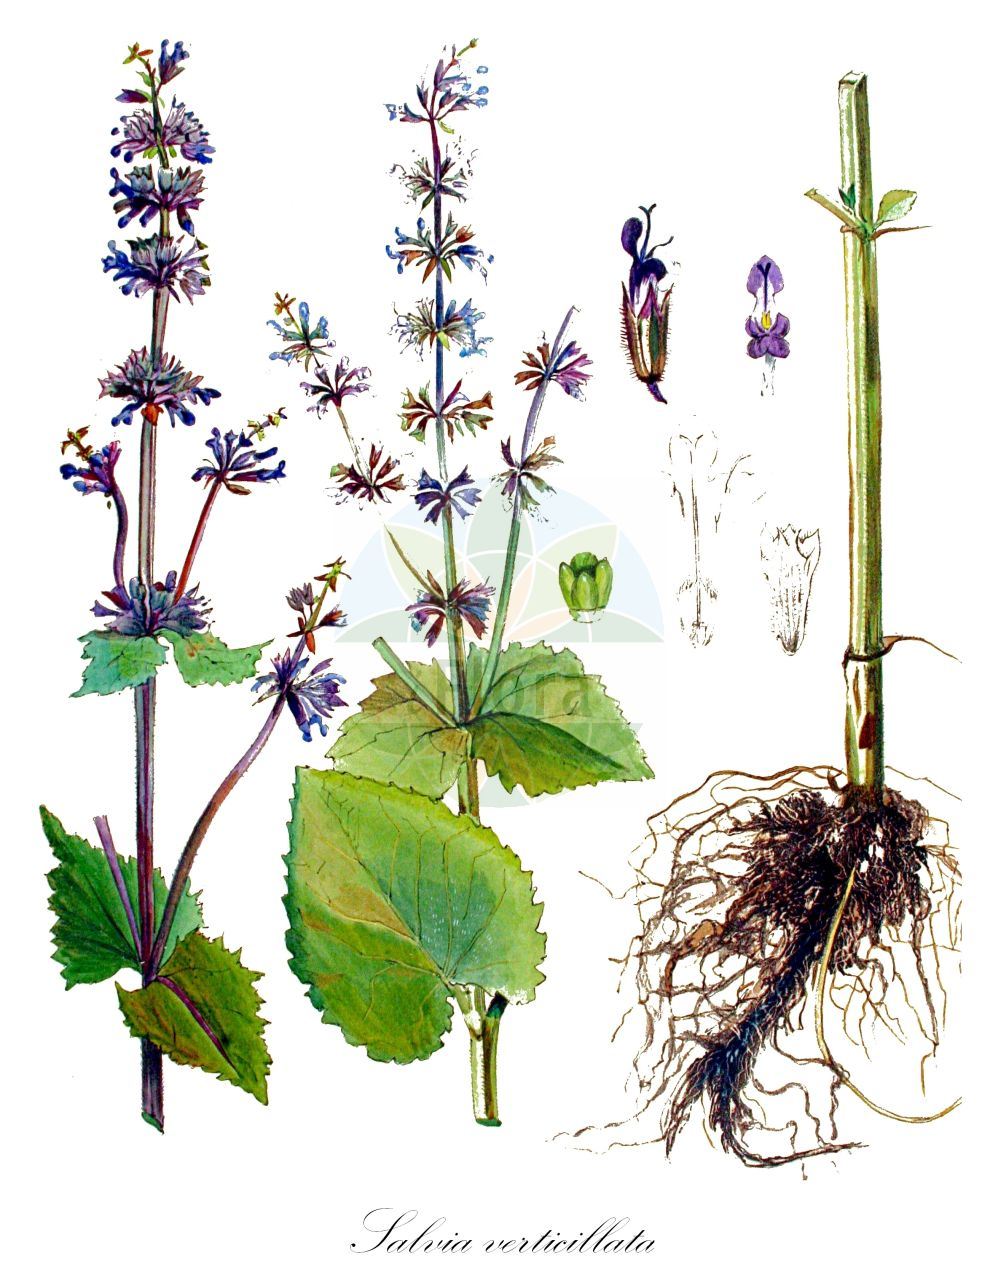 Historische Abbildung von Salvia verticillata (Quirlbluetiger Salbei - Whorled Clary). Das Bild zeigt Blatt, Bluete, Frucht und Same. ---- Historical Drawing of Salvia verticillata (Quirlbluetiger Salbei - Whorled Clary).The image is showing leaf, flower, fruit and seed.(Salvia verticillata,Quirlbluetiger Salbei,Whorled Clary,Covola verticillata,Hemisphace verticillata,Horminum verticillatum,Sphacopsis verticillata,Lilac Sage,Whorled Sage,Salvia,Salbei,Sage,Lamiaceae,Lippenbluetengewaechse;Lippenbluetler,Nettle family,Blatt,Bluete,Frucht,Same,leaf,flower,fruit,seed,Kops (1800-1934))